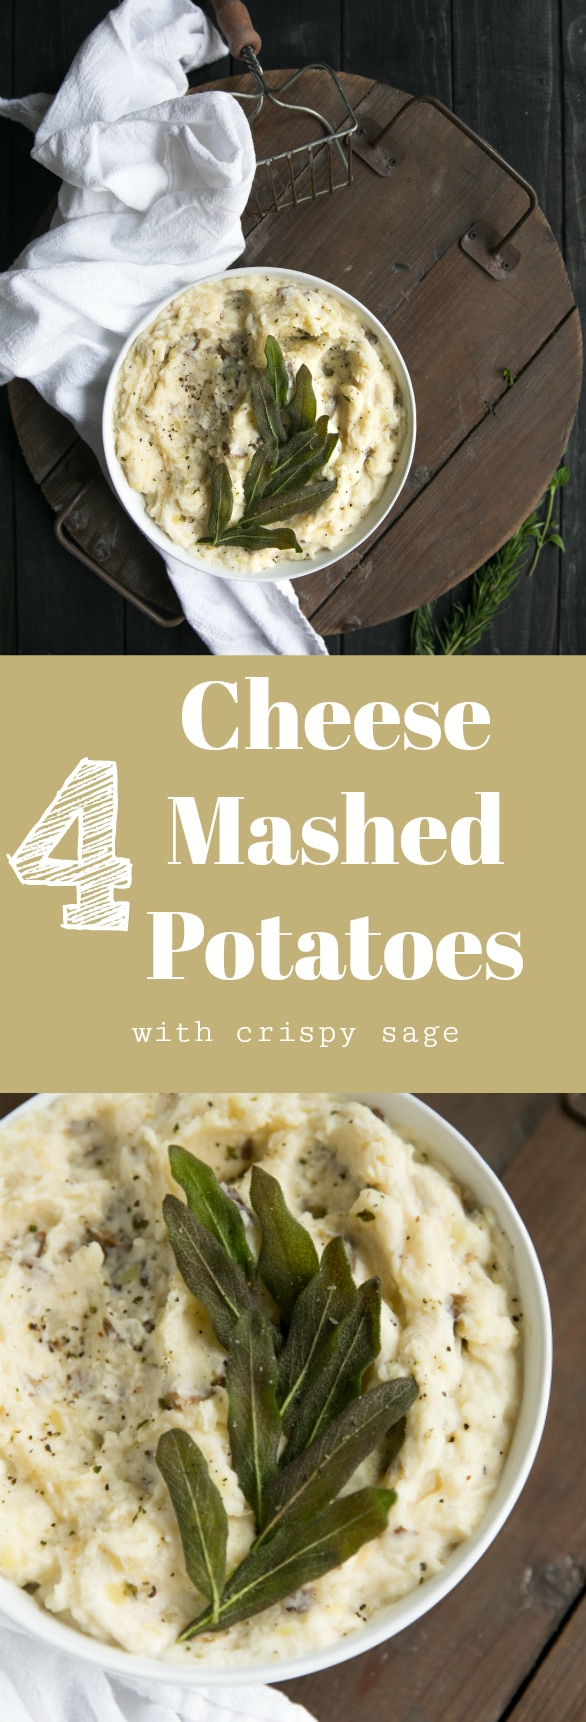 Creamy, cheesy and packed full of extra protein, these amazing Four Cheese Mashed Potatoes with Crispy Sage knock plain old regular potatoes out of the park and make the perfect side to any meal.  Via @theforkedspoon #sides #holiday #thanksgiving #entertaining #potatoes #cheese #easyrecipes